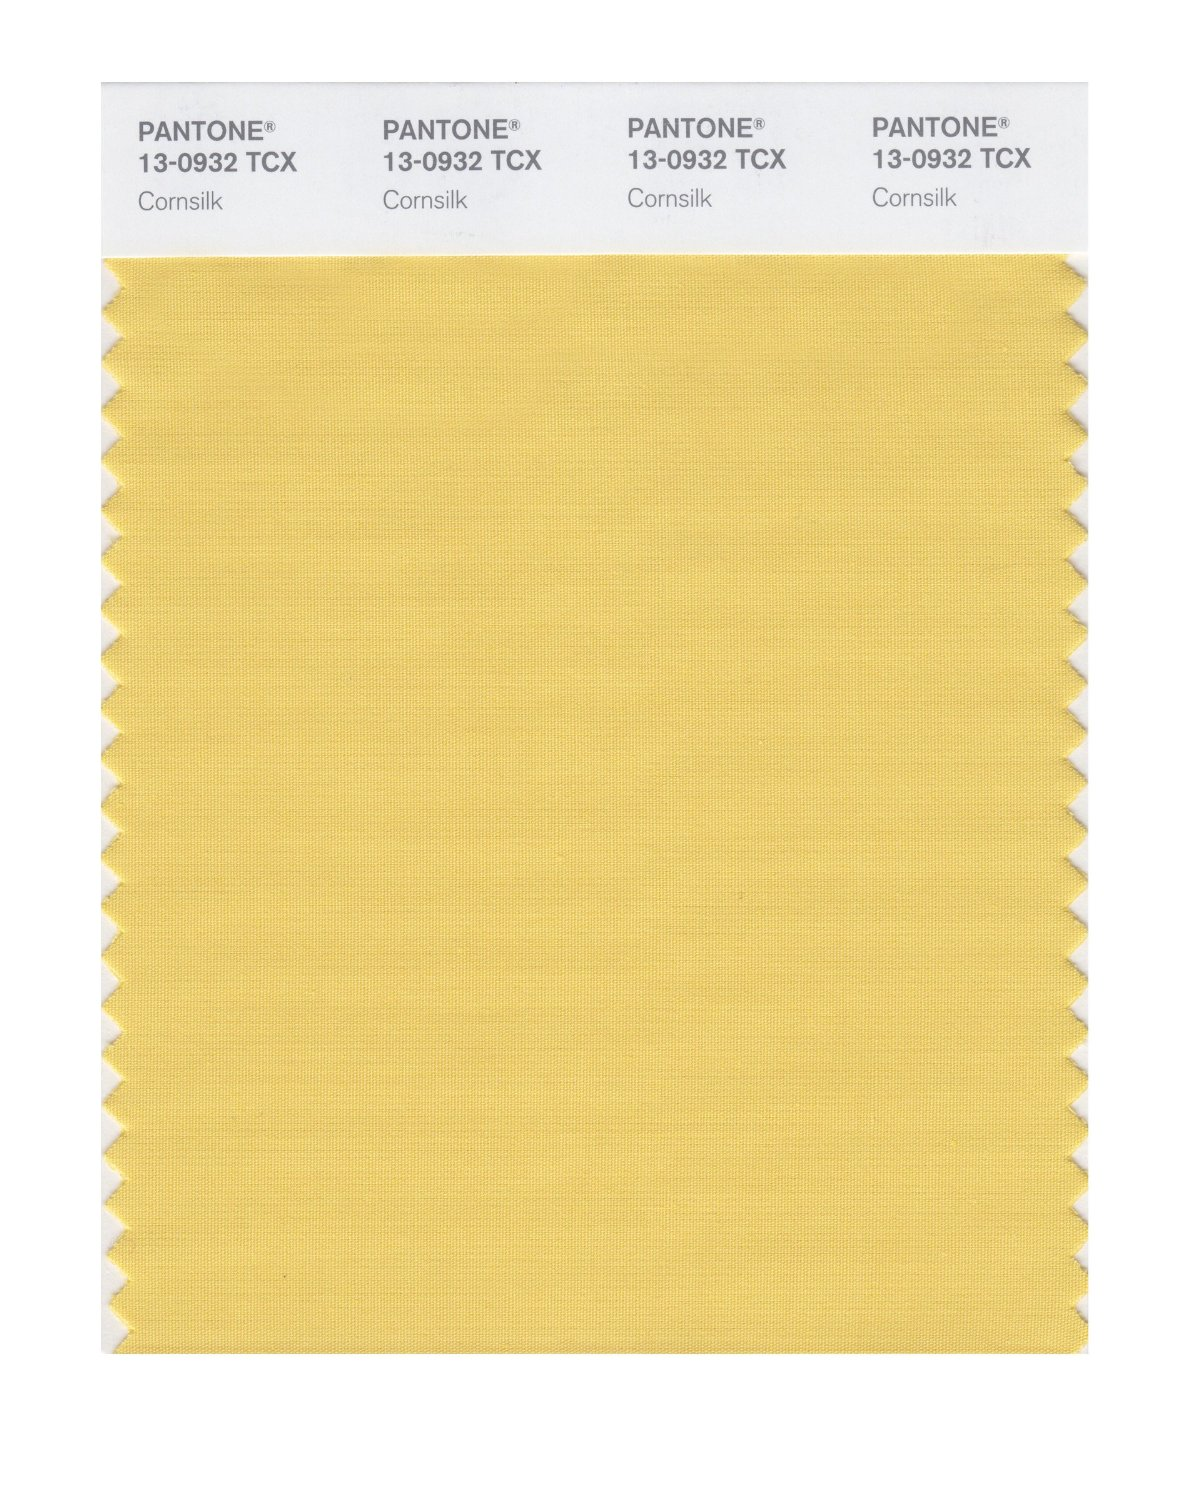 Pantone Smart Swatch 13-0932 Cornsilk